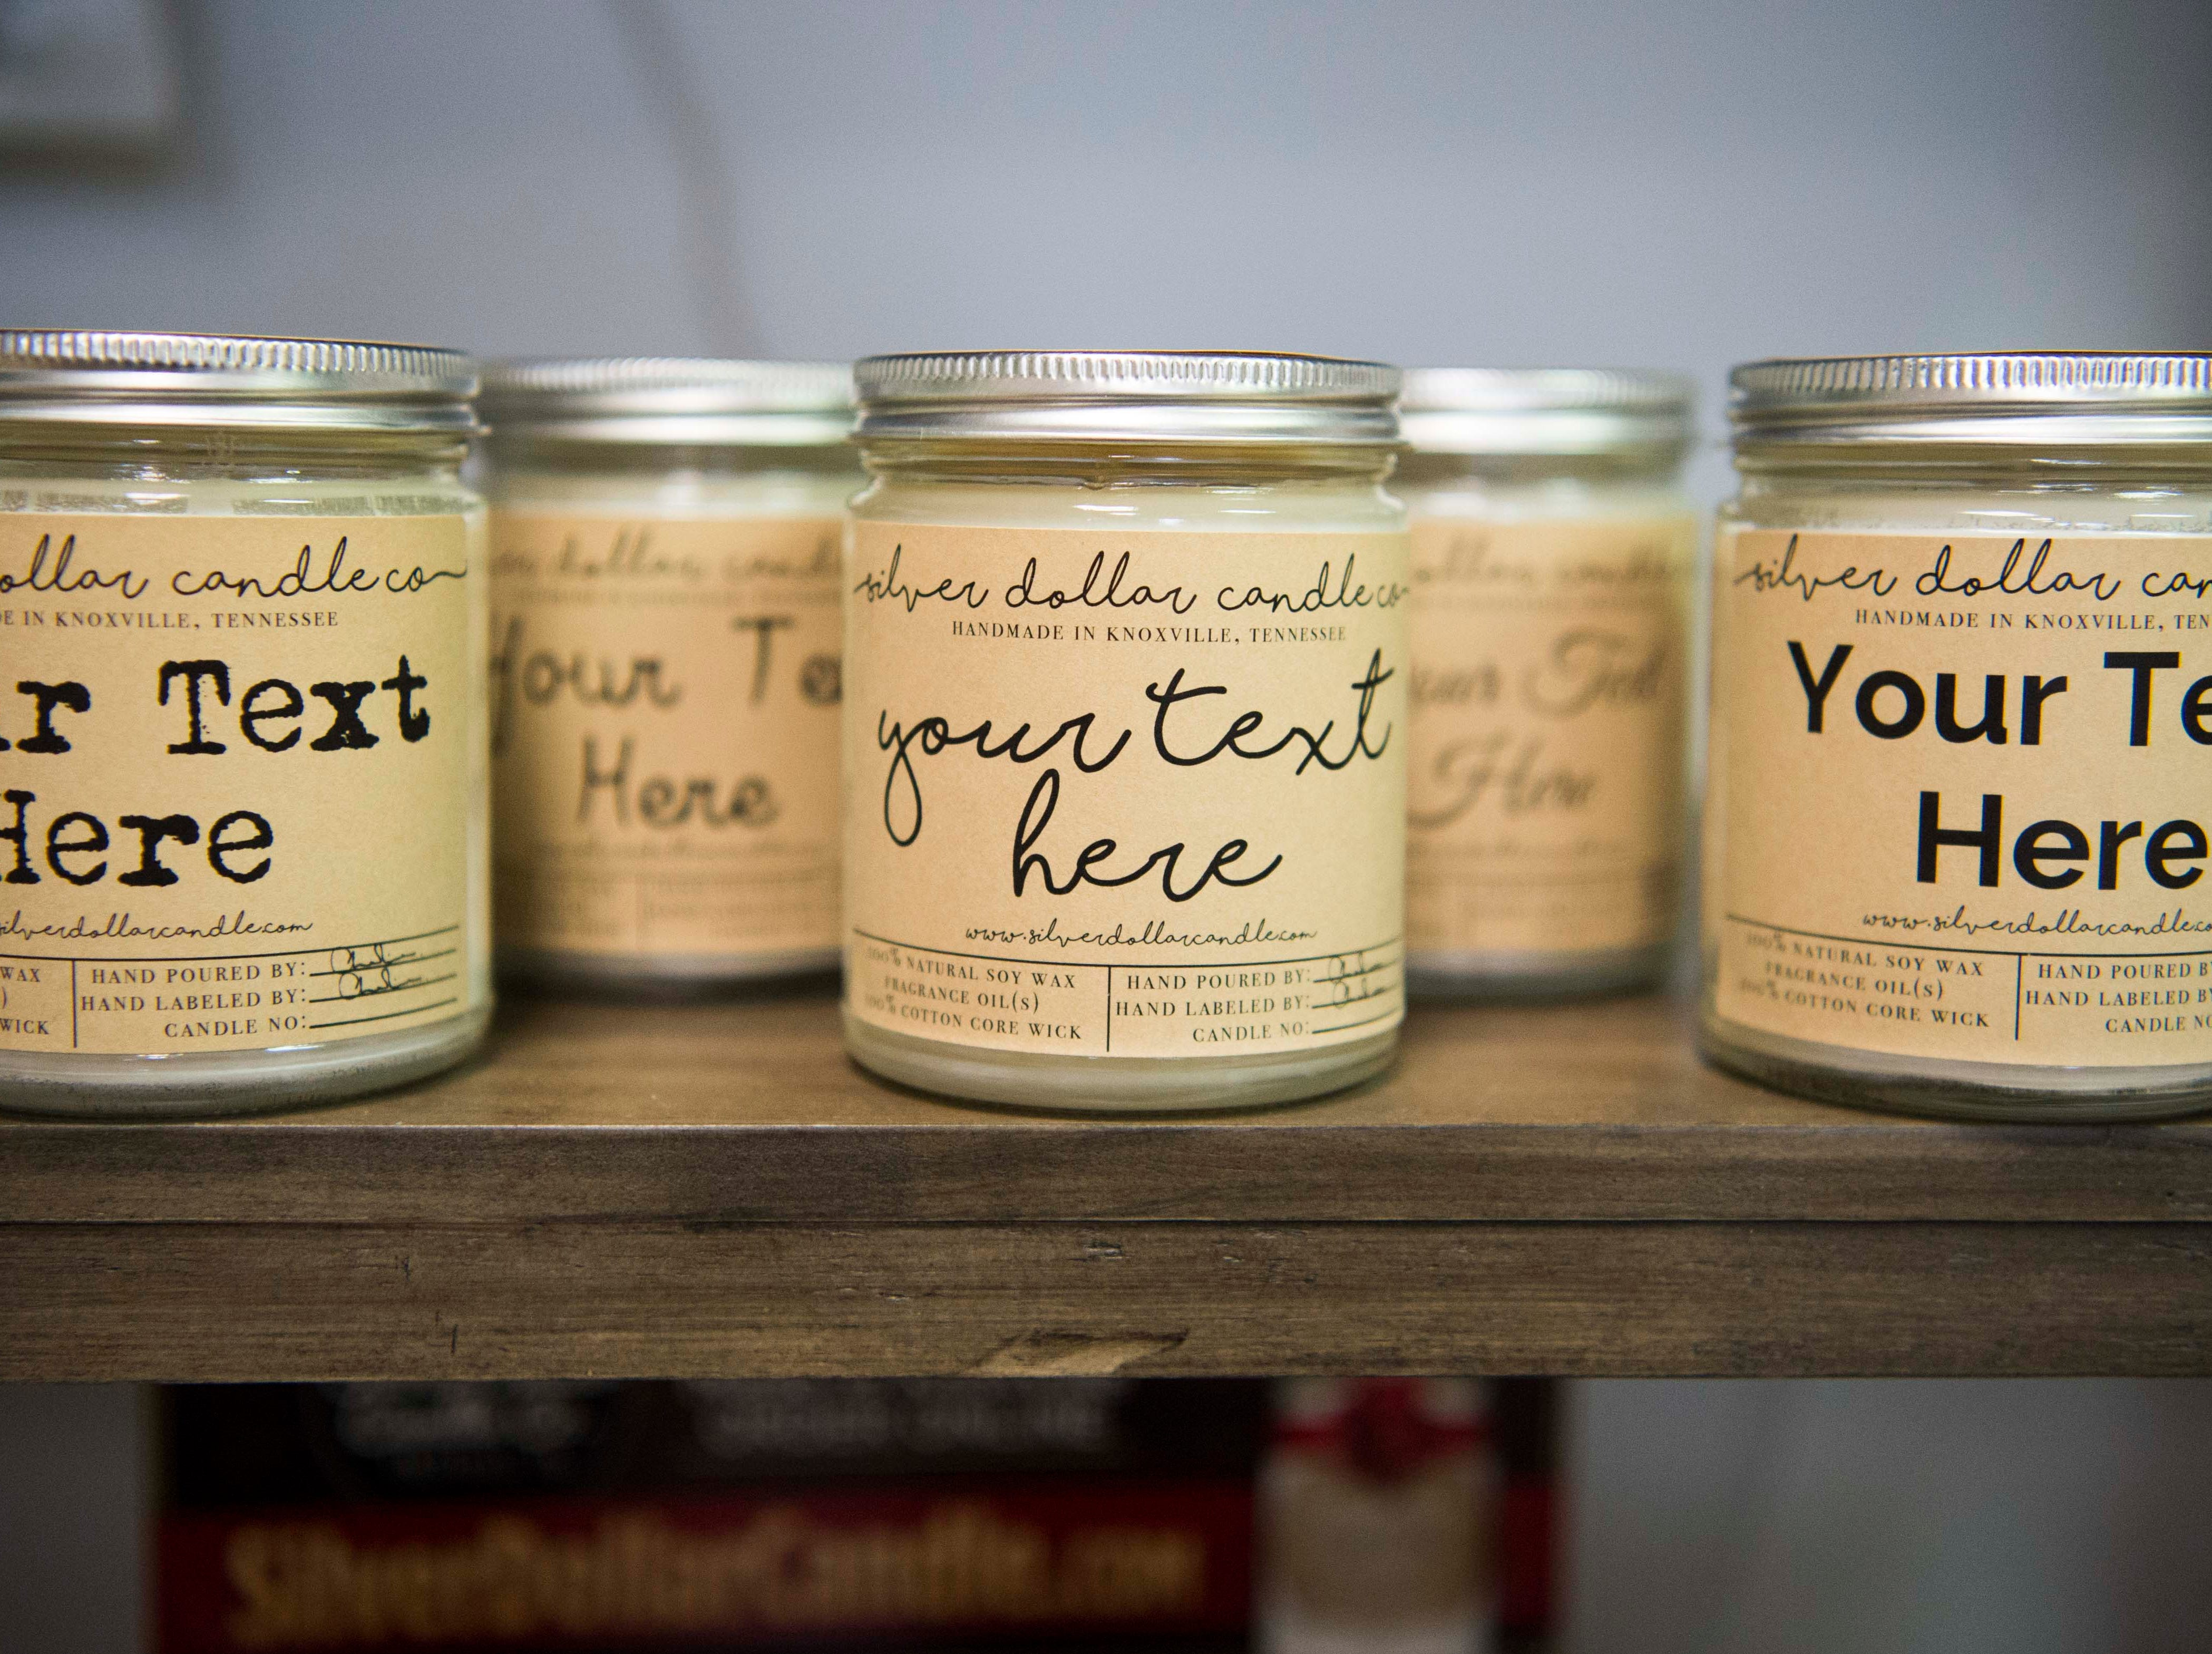 Candles are arranged on shelves at Silver Dollar Candle Co. in Knoxville Tuesday, March 26, 2019. Silver Dollar Candle offers unique soy candles in a variety of scents, and is expanding to offer a make-your-own candle experience in their store.